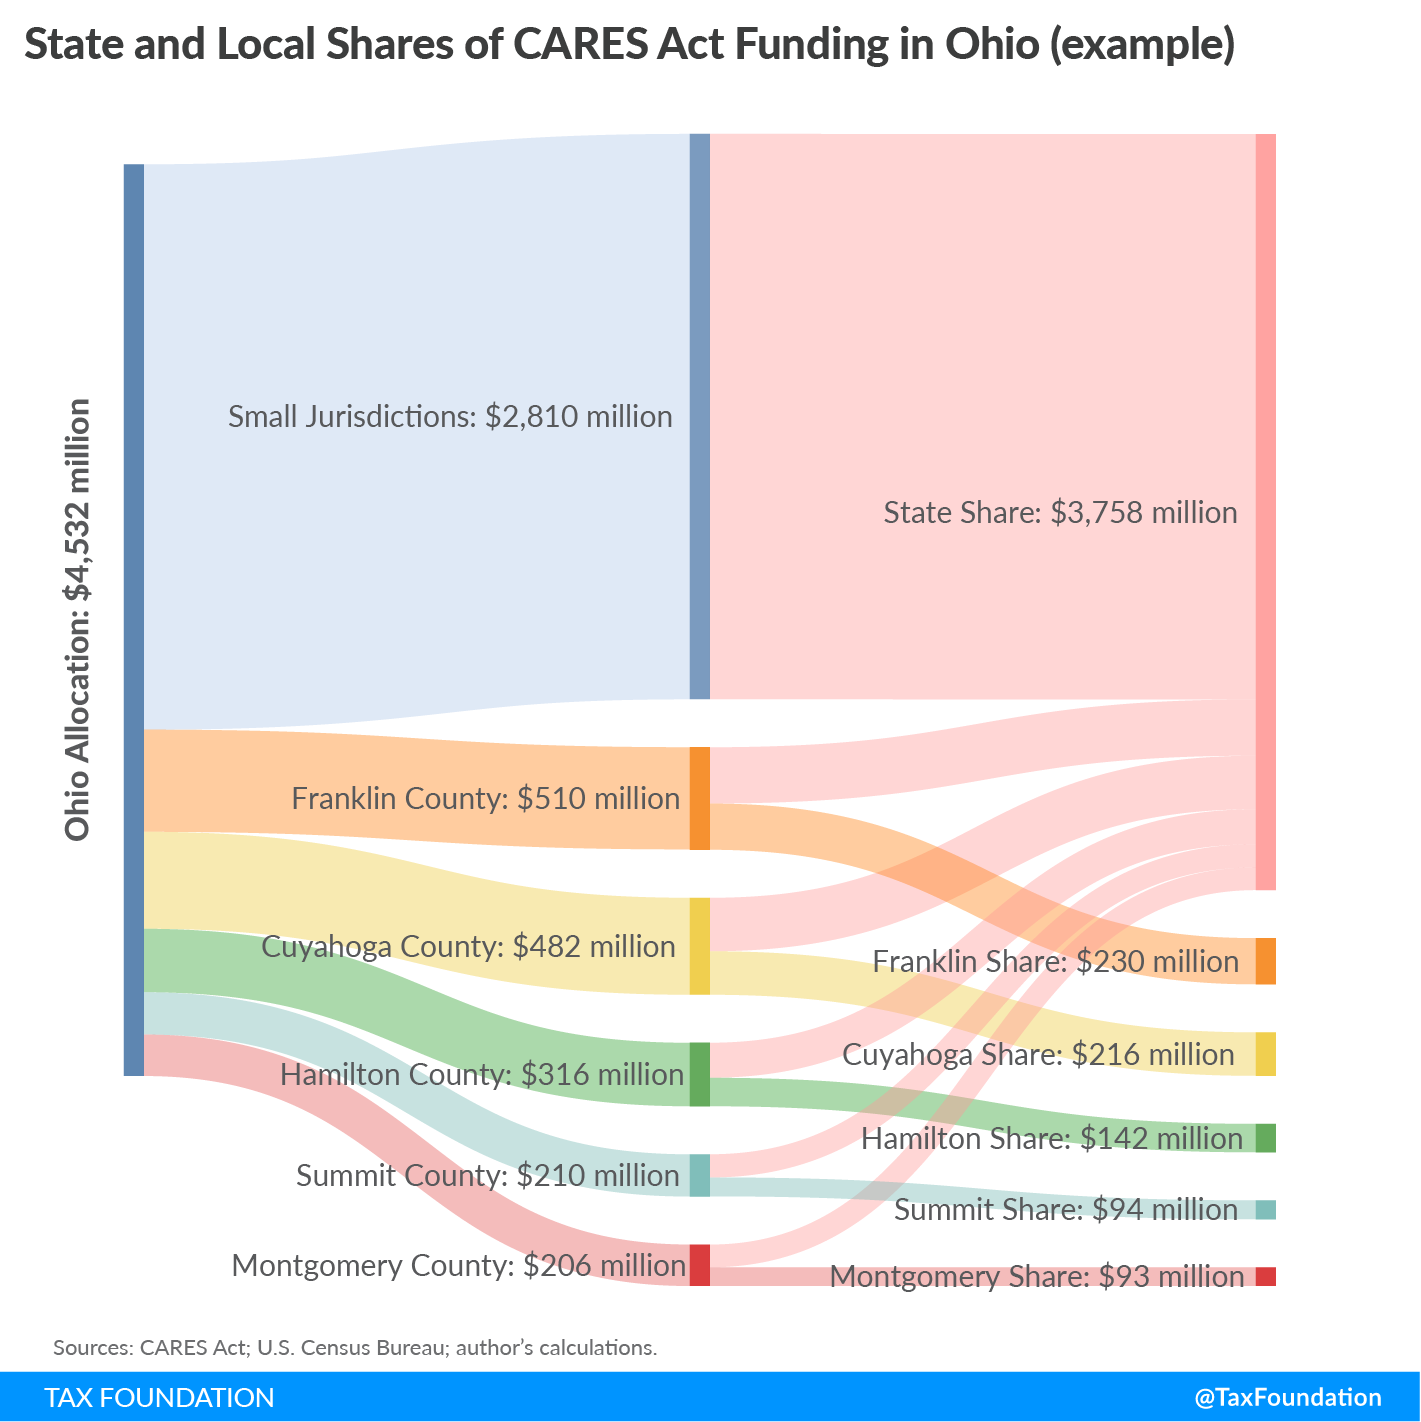 Federal coronavirus aid to states and localities under the CARES Act. State and local shares of CARES Act funding. State and local funding totals in the CARES Act